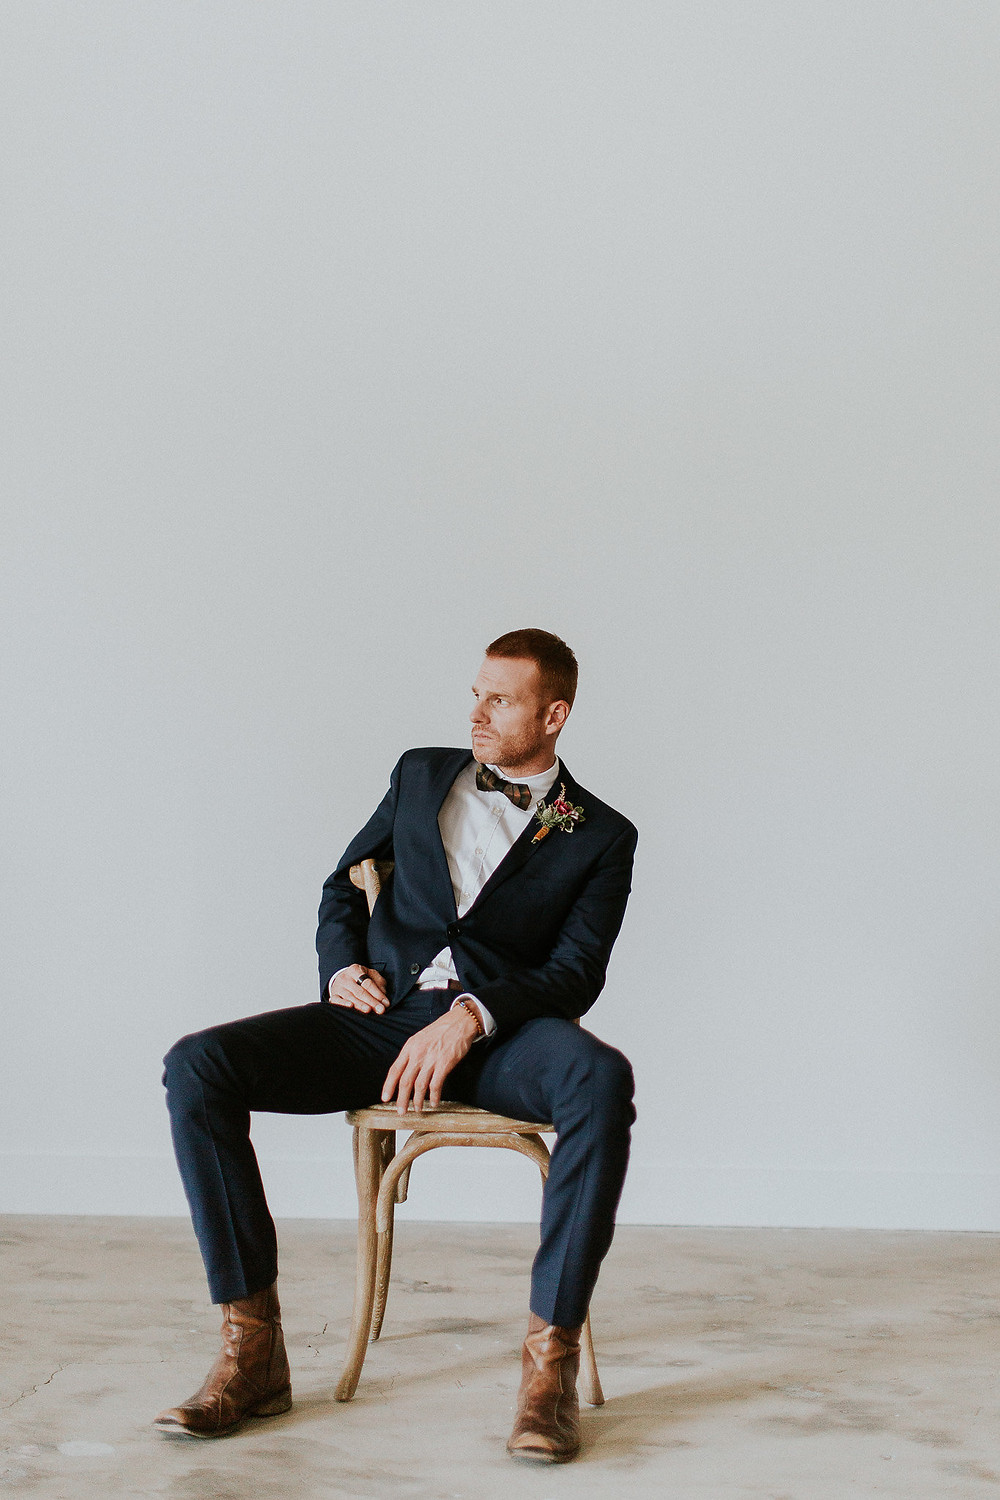 Groom sits and waits patiently for his bride